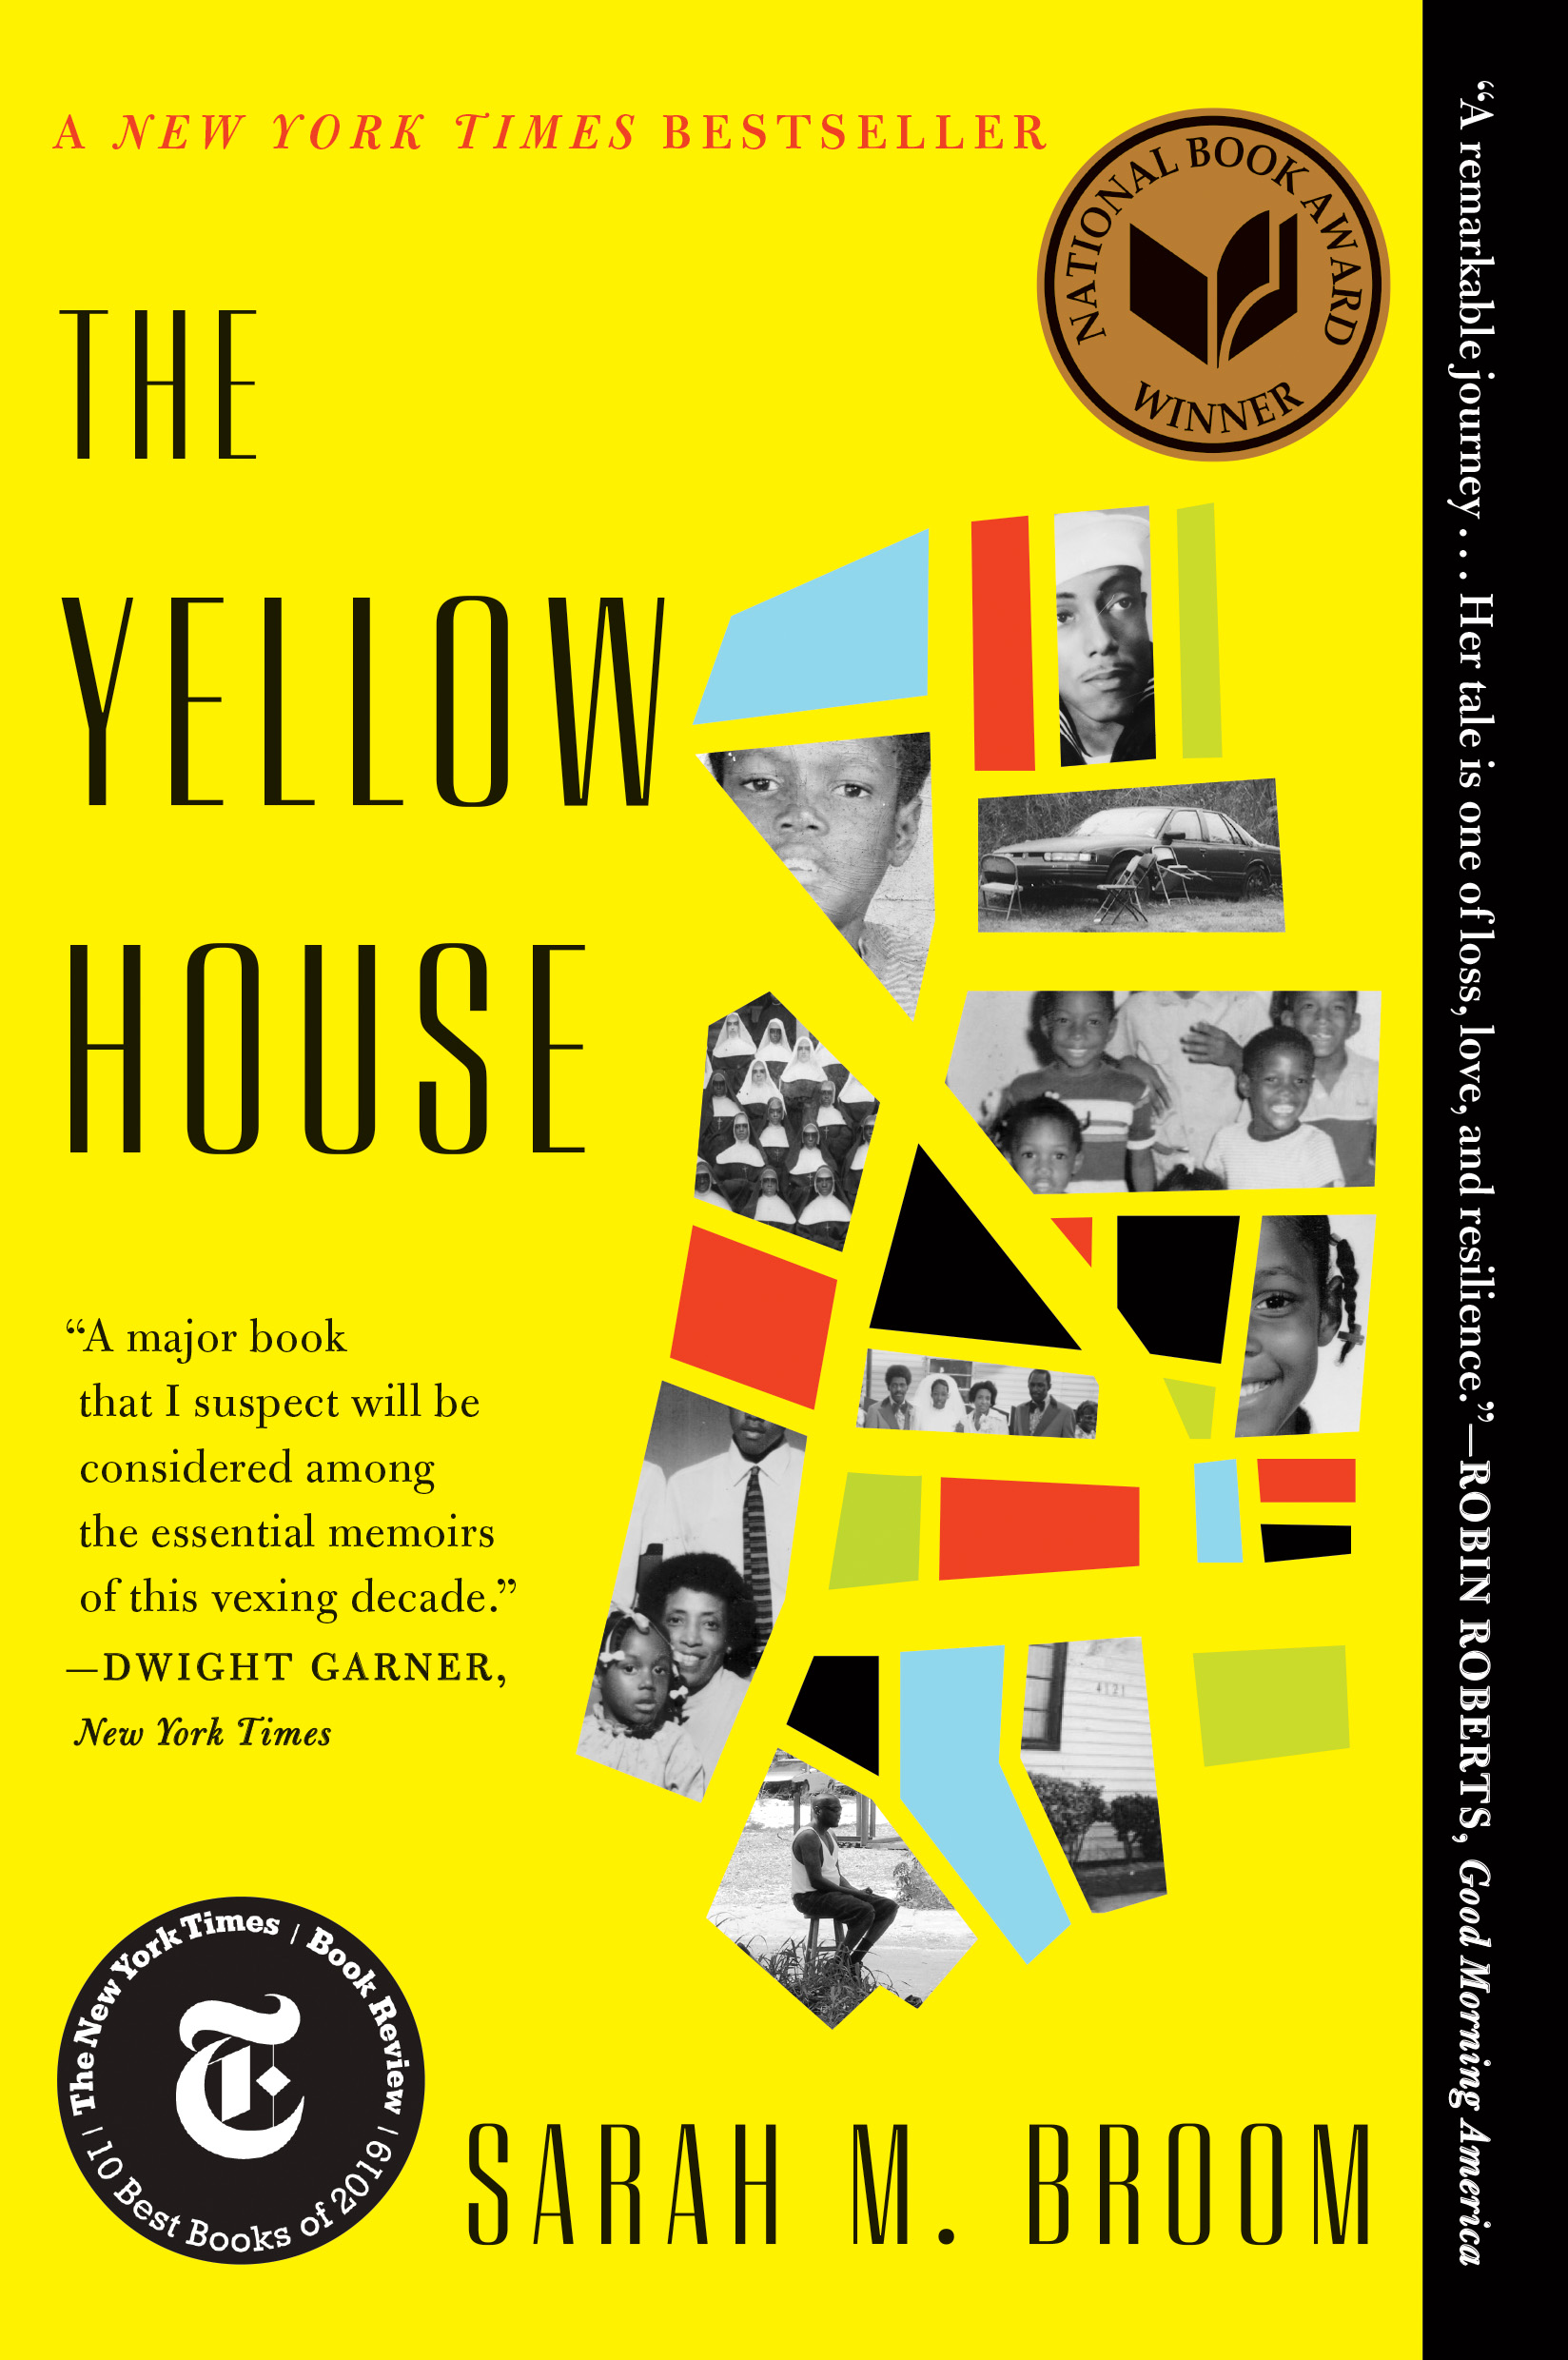 The Yellow House